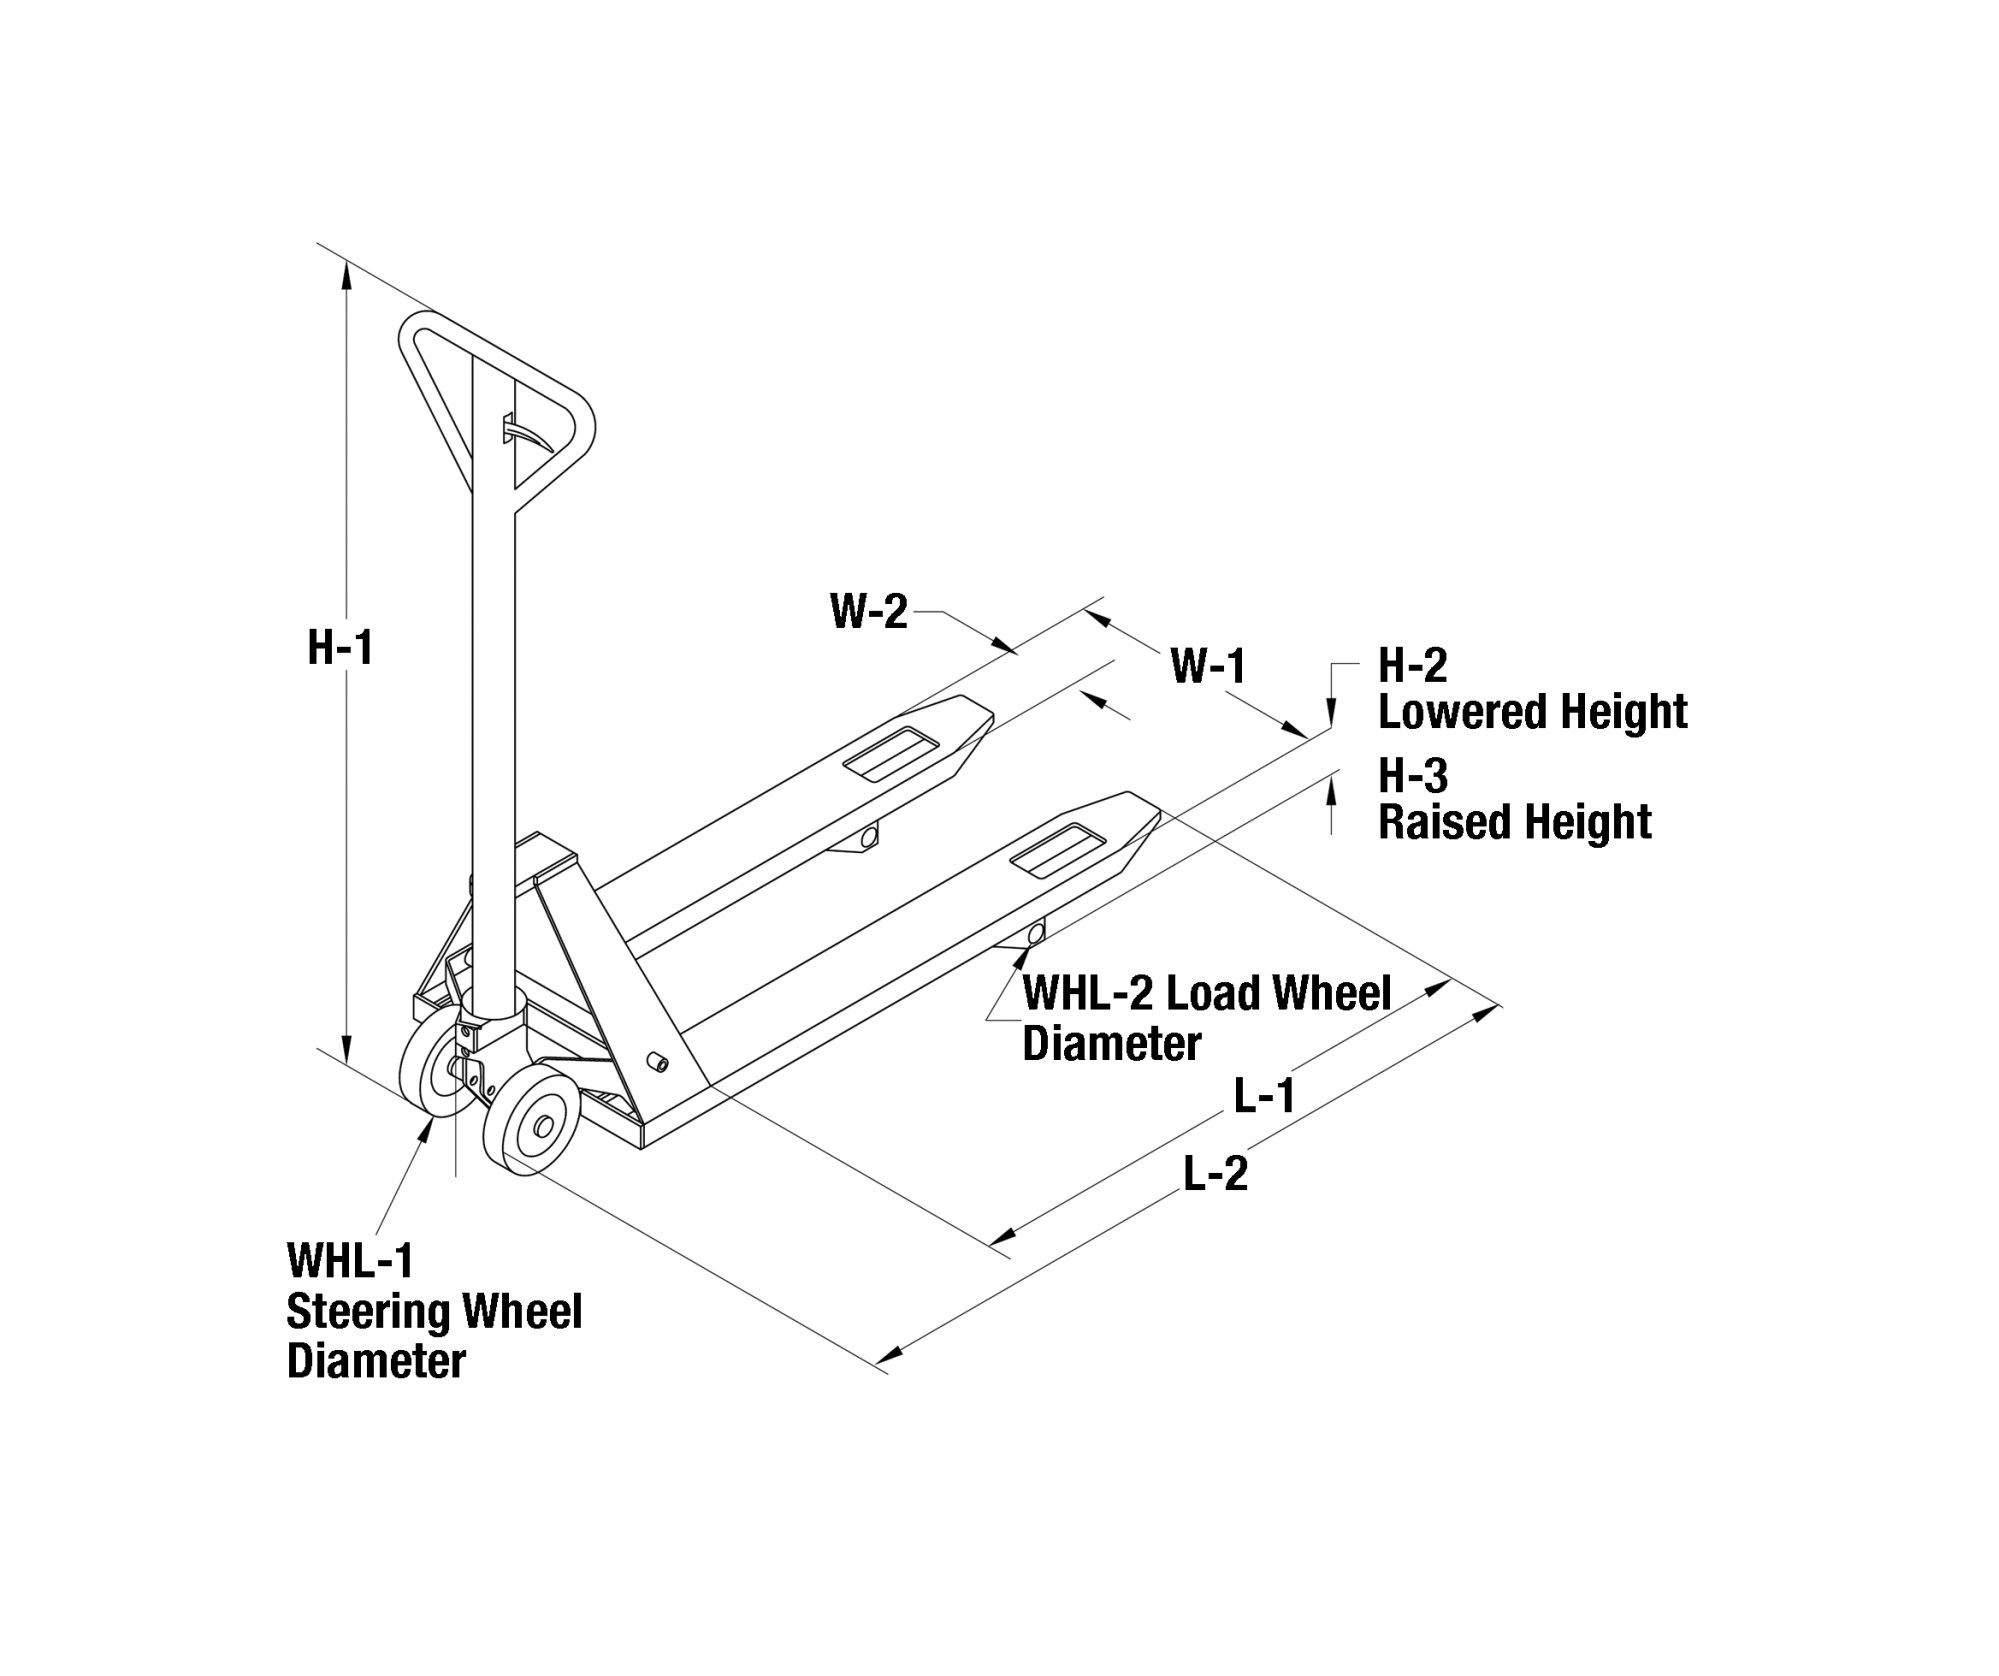 hight resolution of 273445 pallet truck schematic drawing